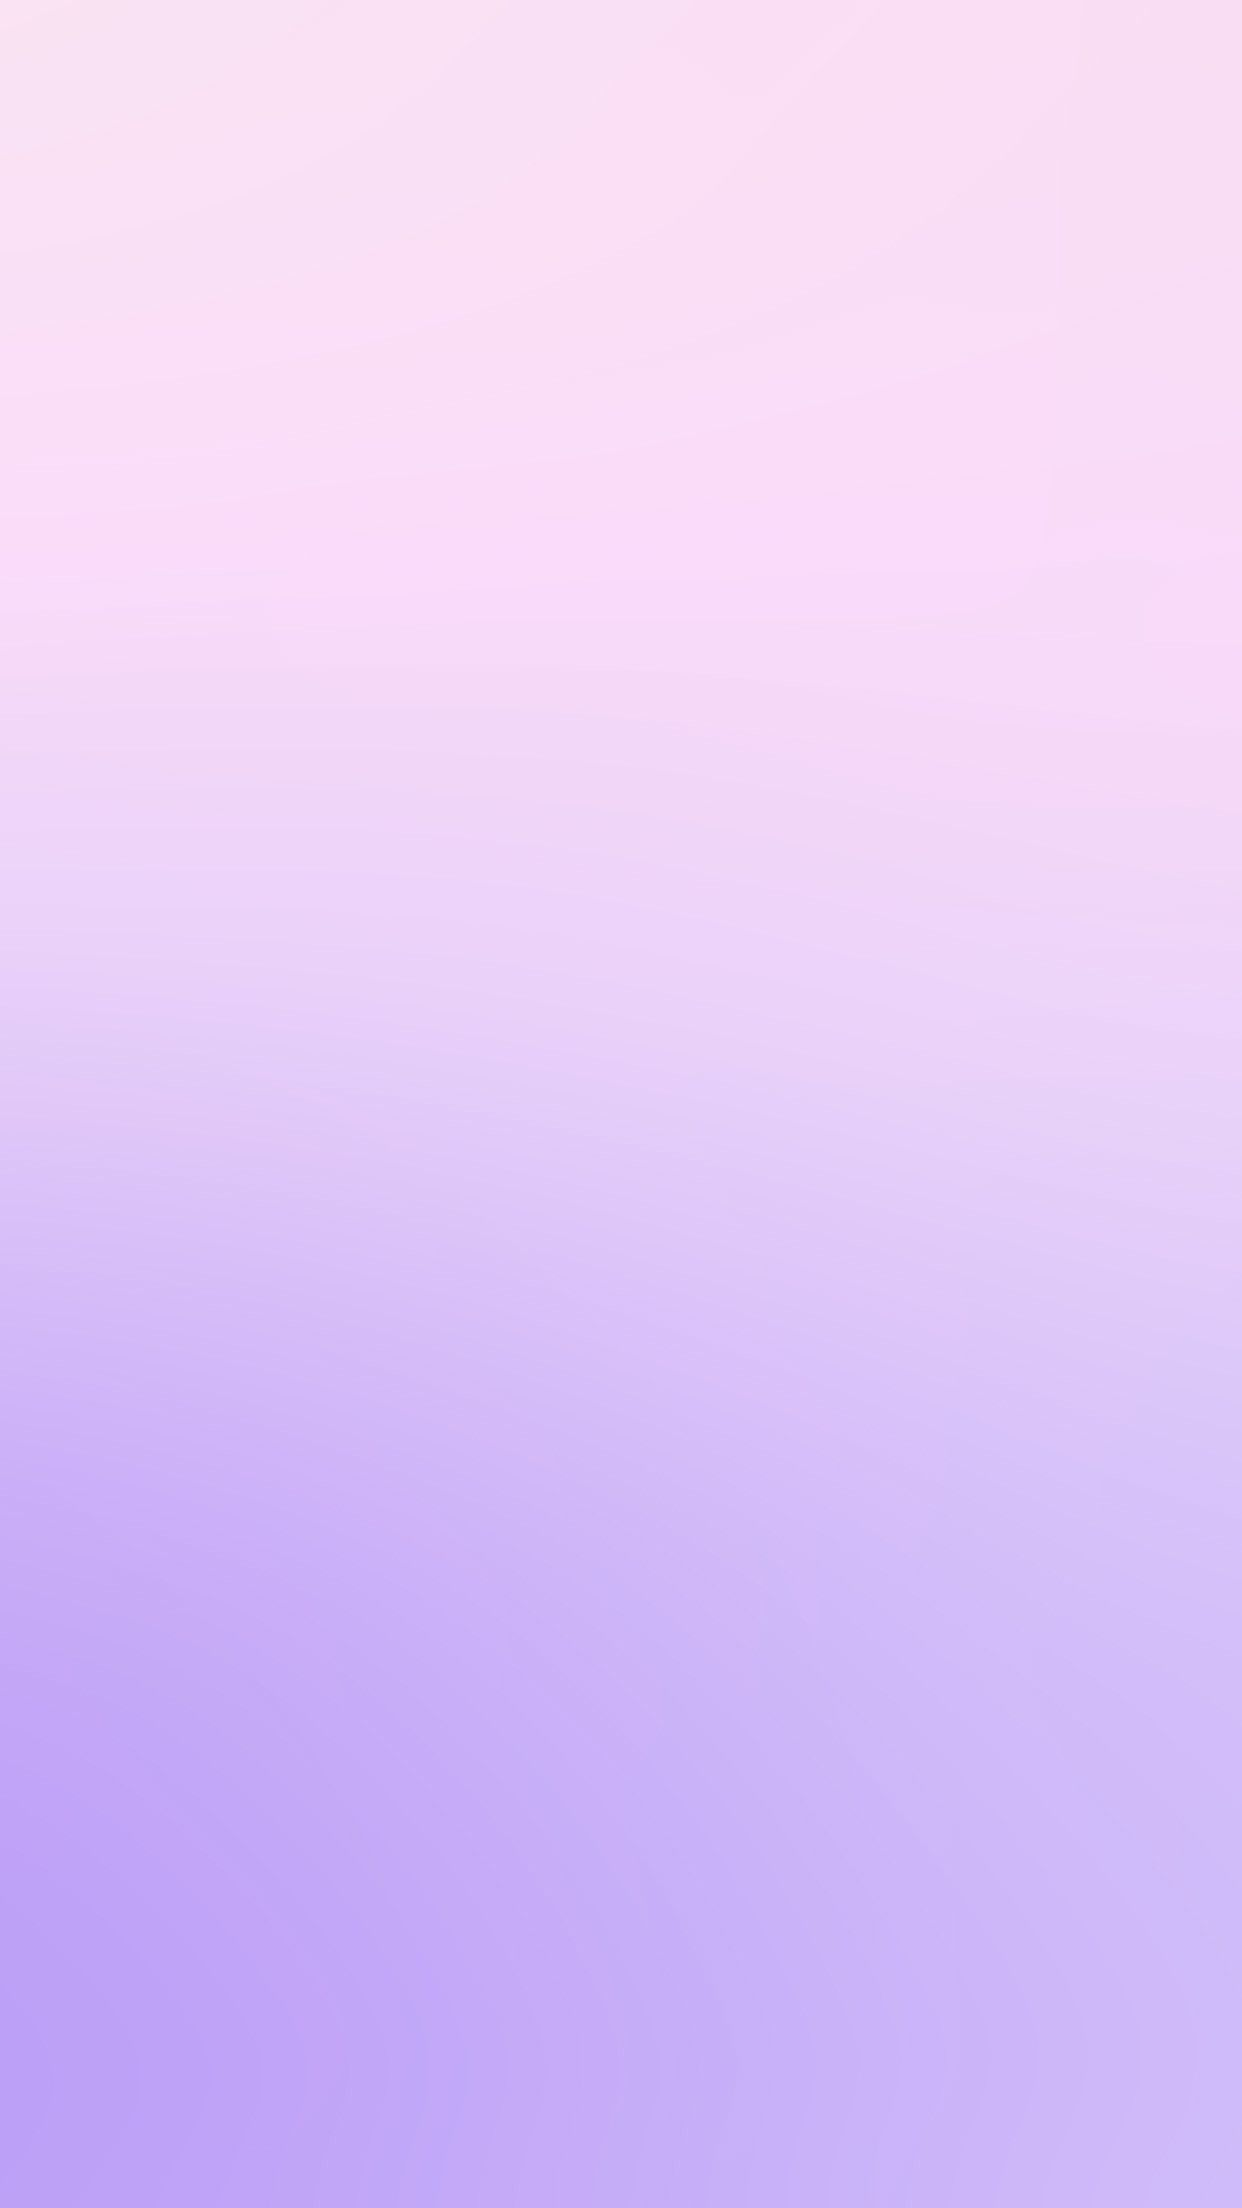 Download Image In 2020 Ombre Wallpaper Iphone Pink Ombre Wallpaper Light Purple Wallpaper